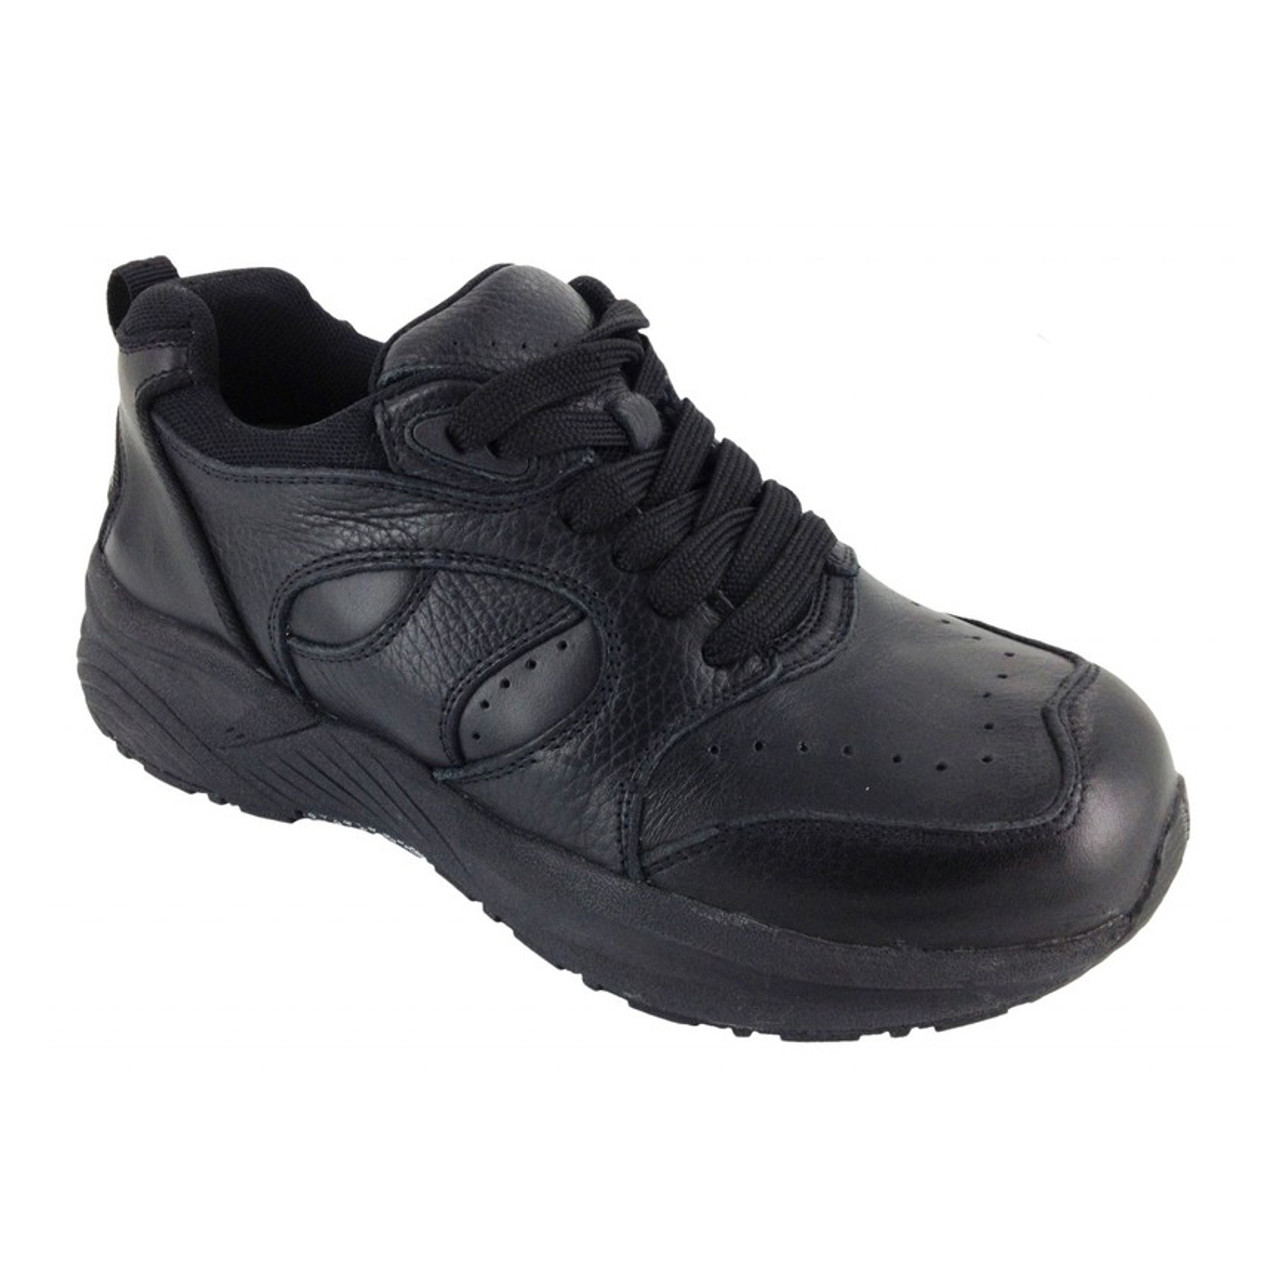 e72b42a9313 Black Athletic Orthopedic Shoes With Laces For Women